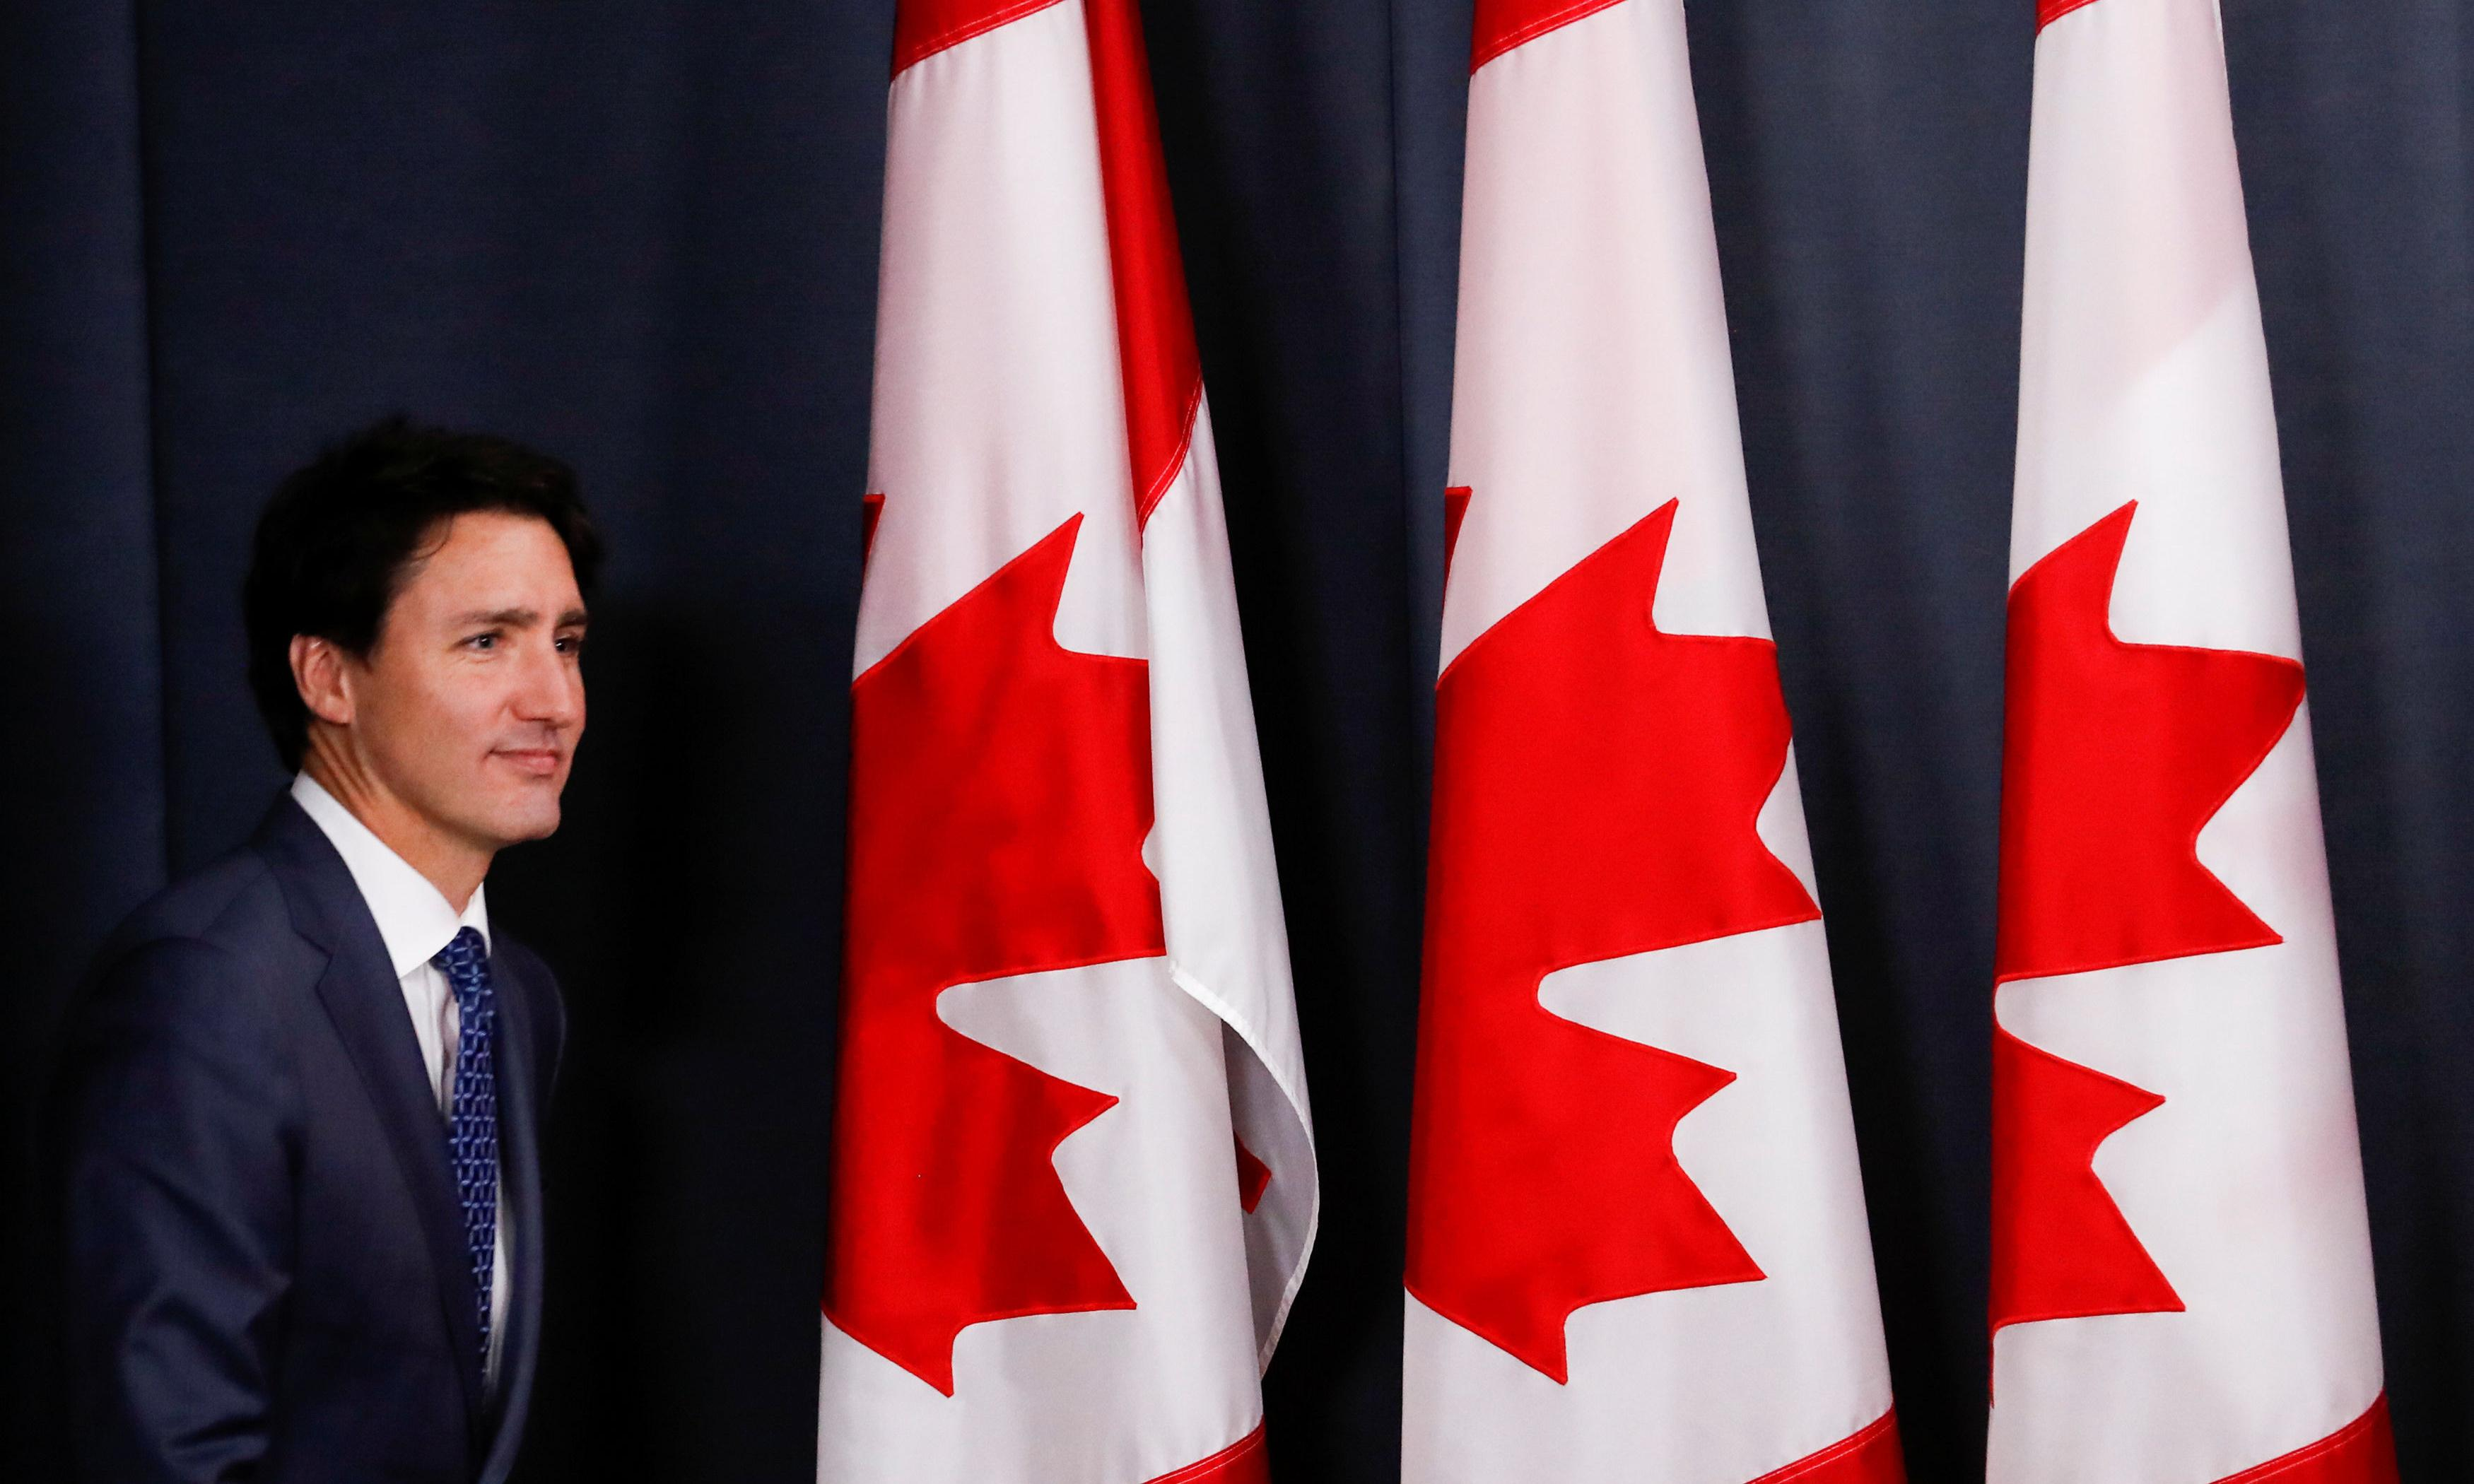 Justin Trudeau unveils new cabinet with focus on national unity